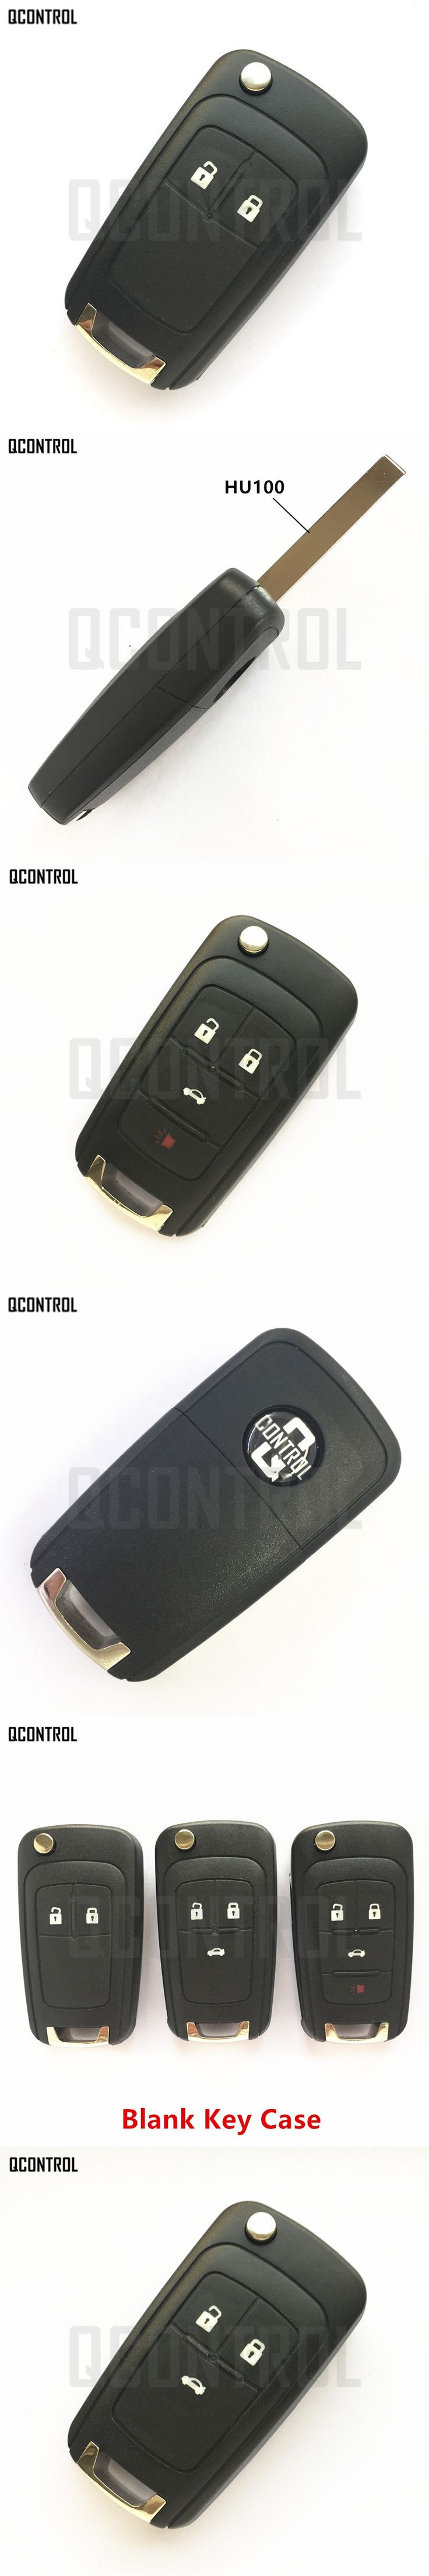 QCONTROL Car Remote Key Case for Chevrolet Malibu Cruze Aveo Spark Sail 2/3/4 Buttons